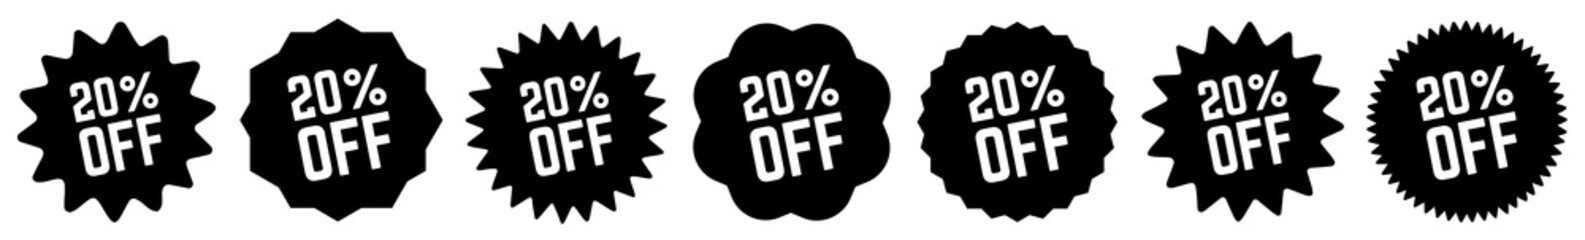 20 Percent OFF Discount Tag Black   Special Offer Icon   Sale Sticker   Deal Label   Variations